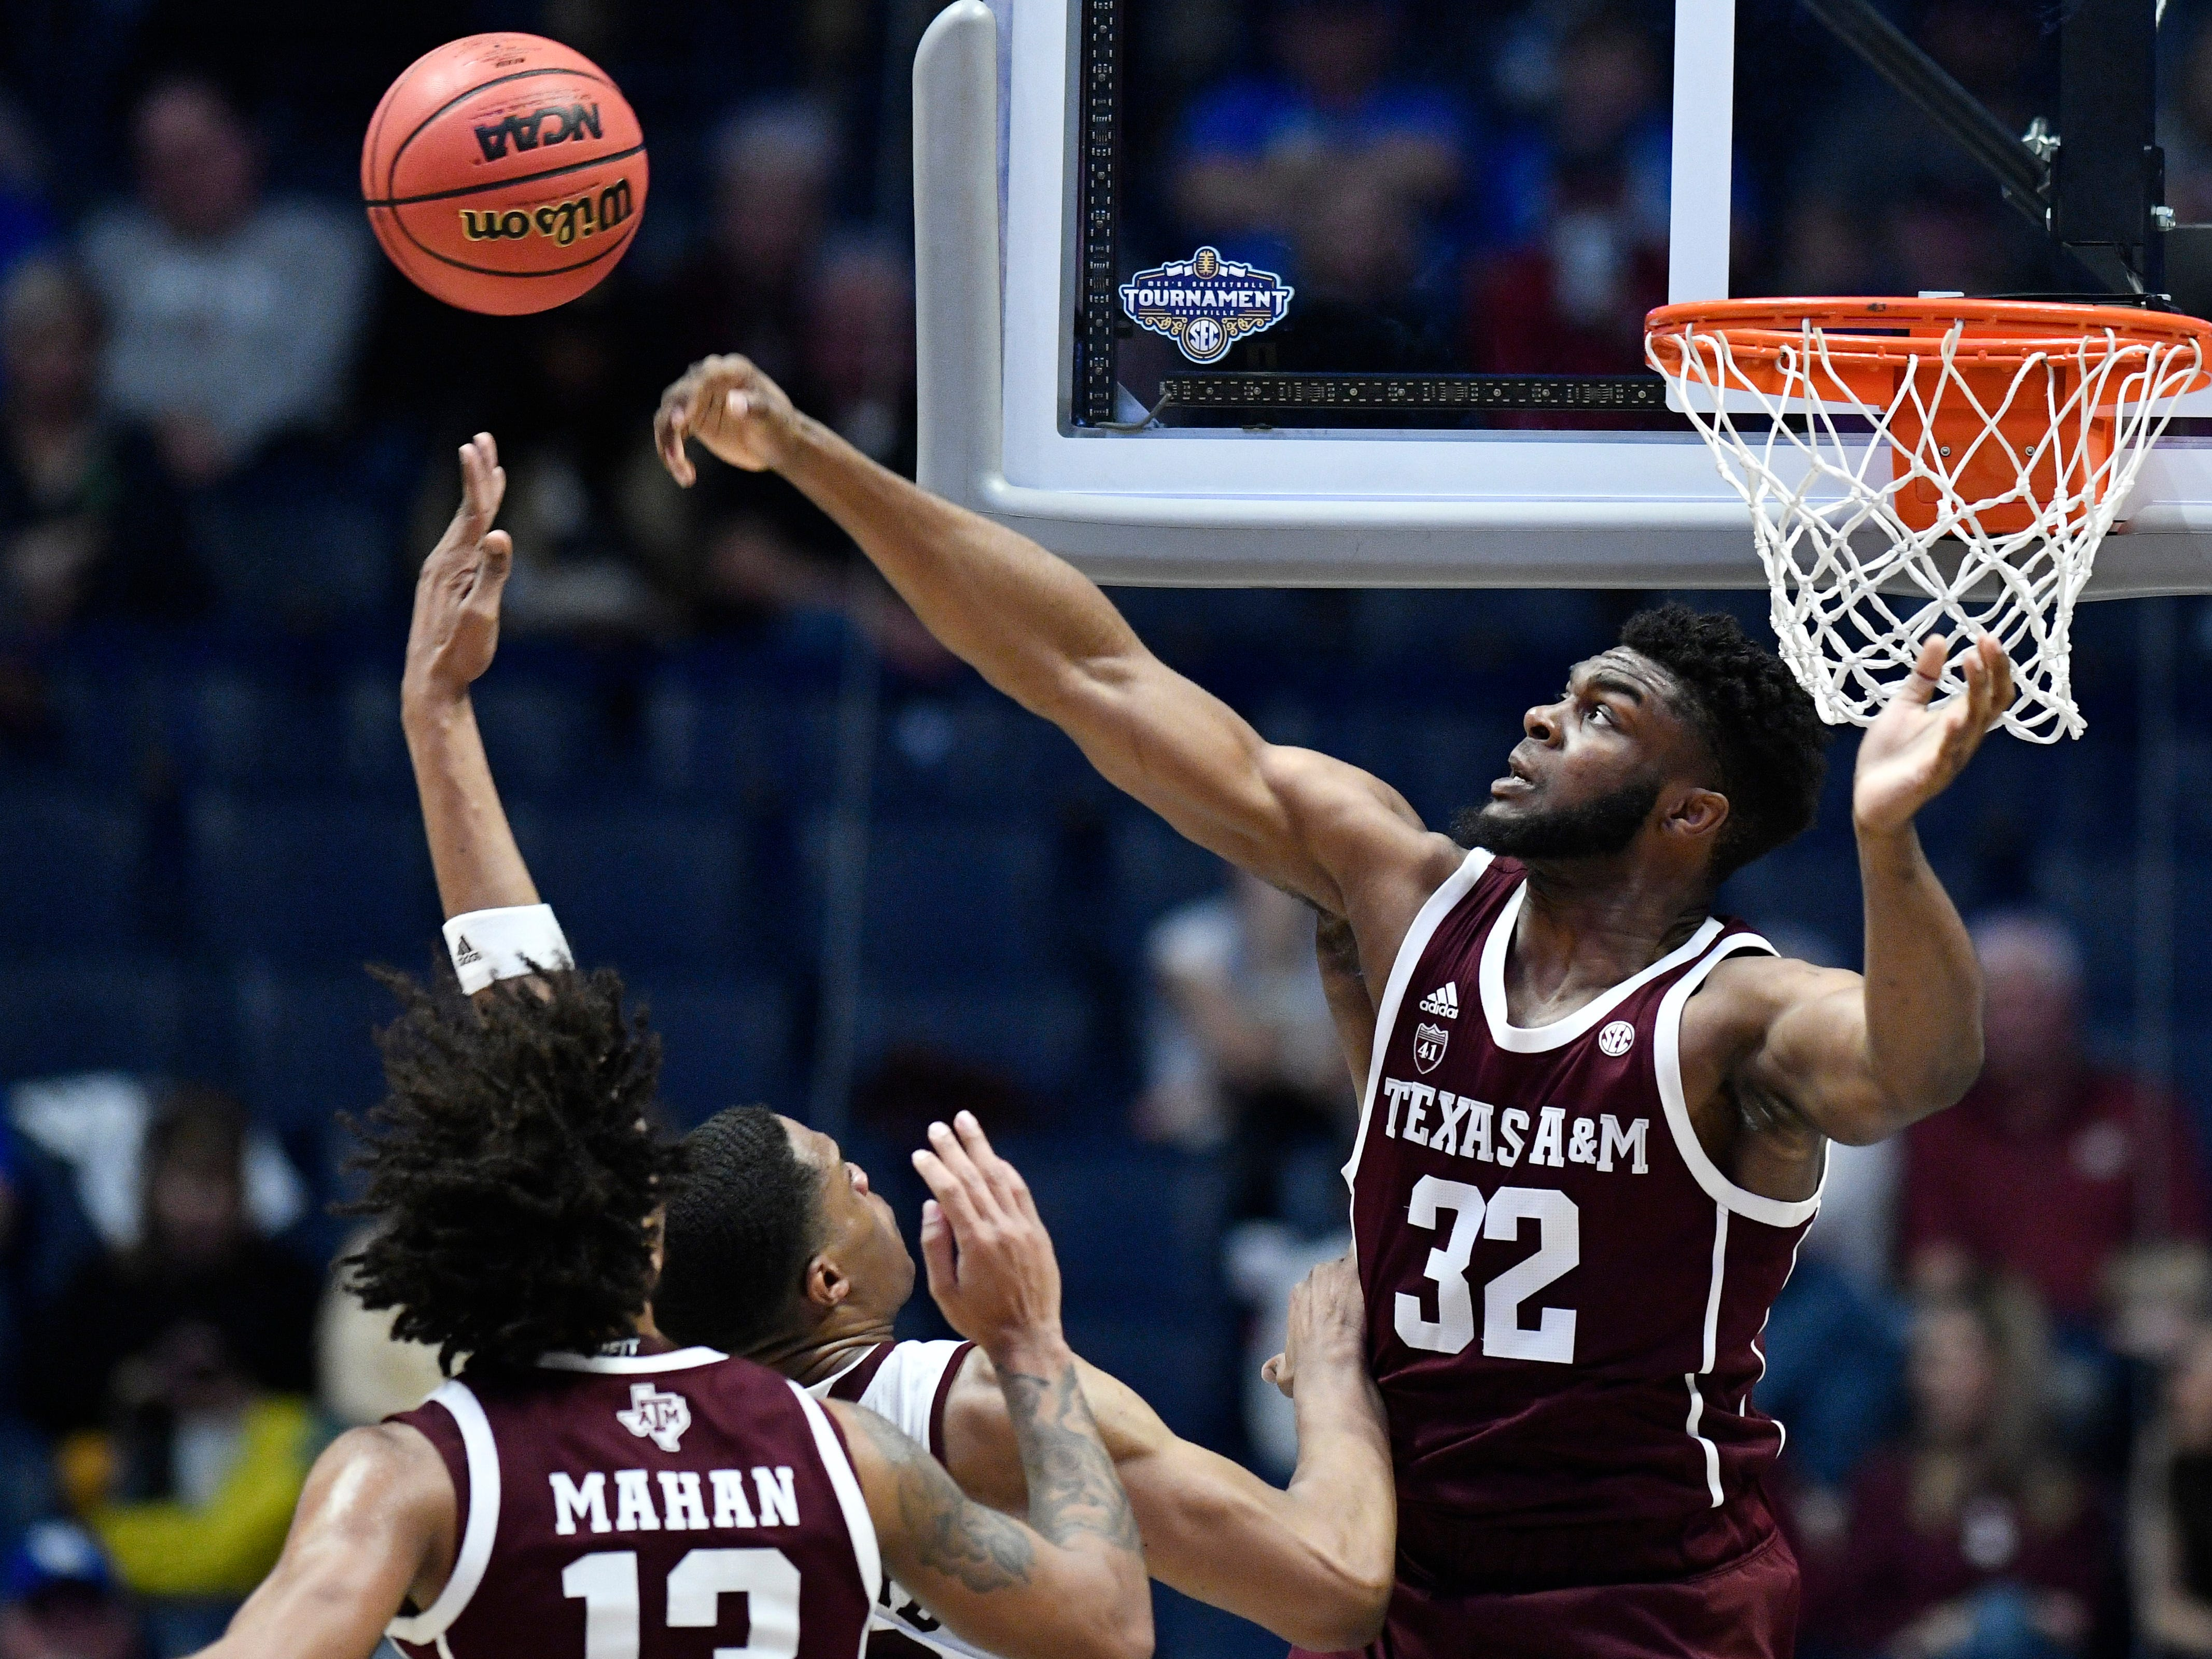 Texas A&M forward Josh Nebo (32) swats away a shot by Mississippi State guard Robert Woodard (12) during the first half of the SEC Men's Basketball Tournament game at Bridgestone Arena in Nashville, Tenn., Thursday, March 14, 2019.